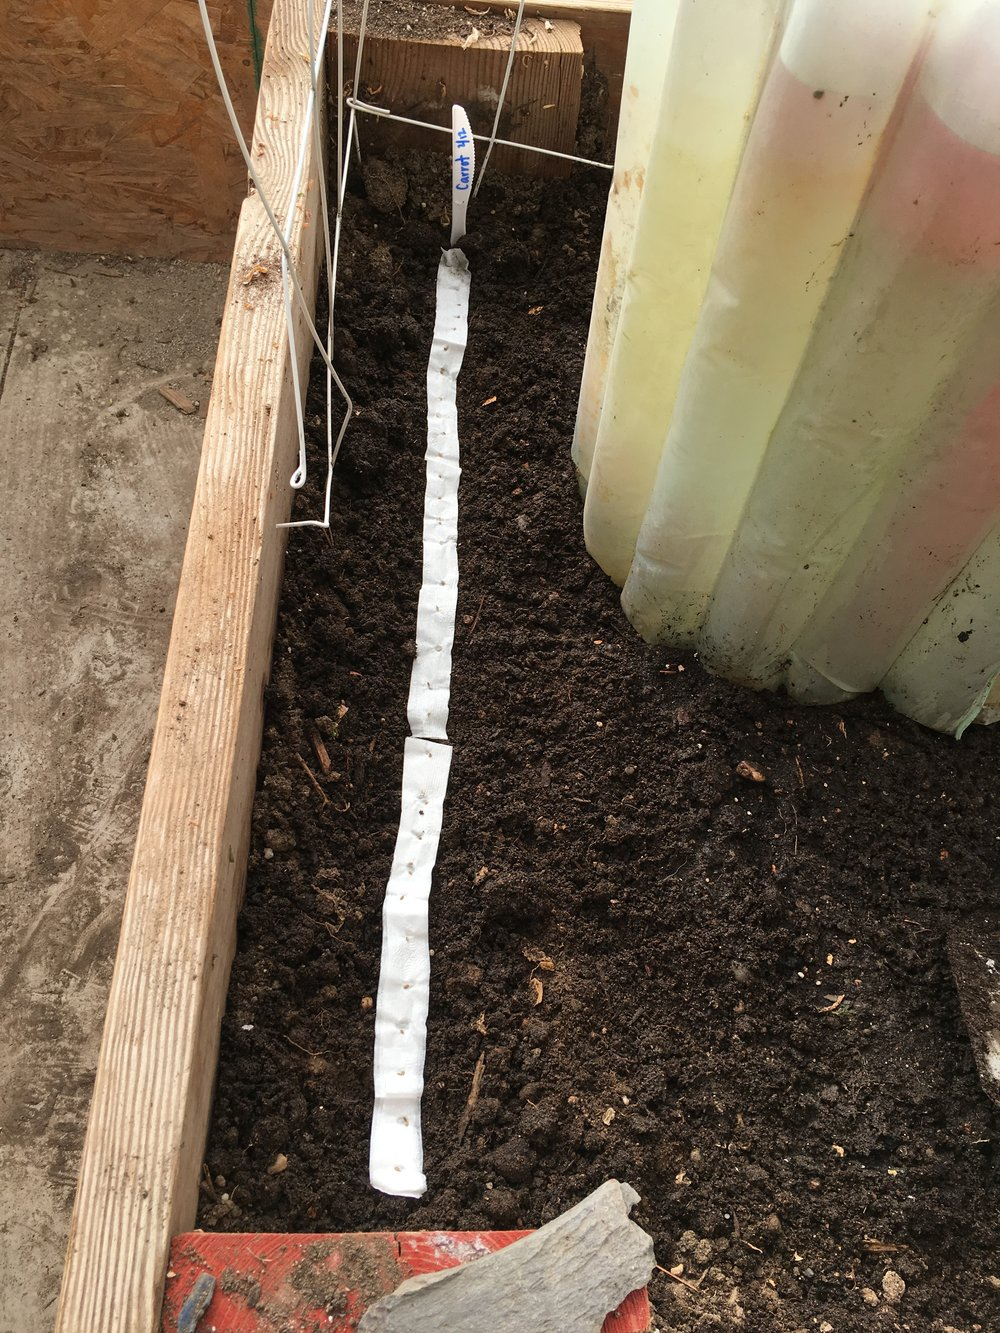 Seed tape and the use of Wall-O-Waters help give planting a jump start during the varied weather this time of year.